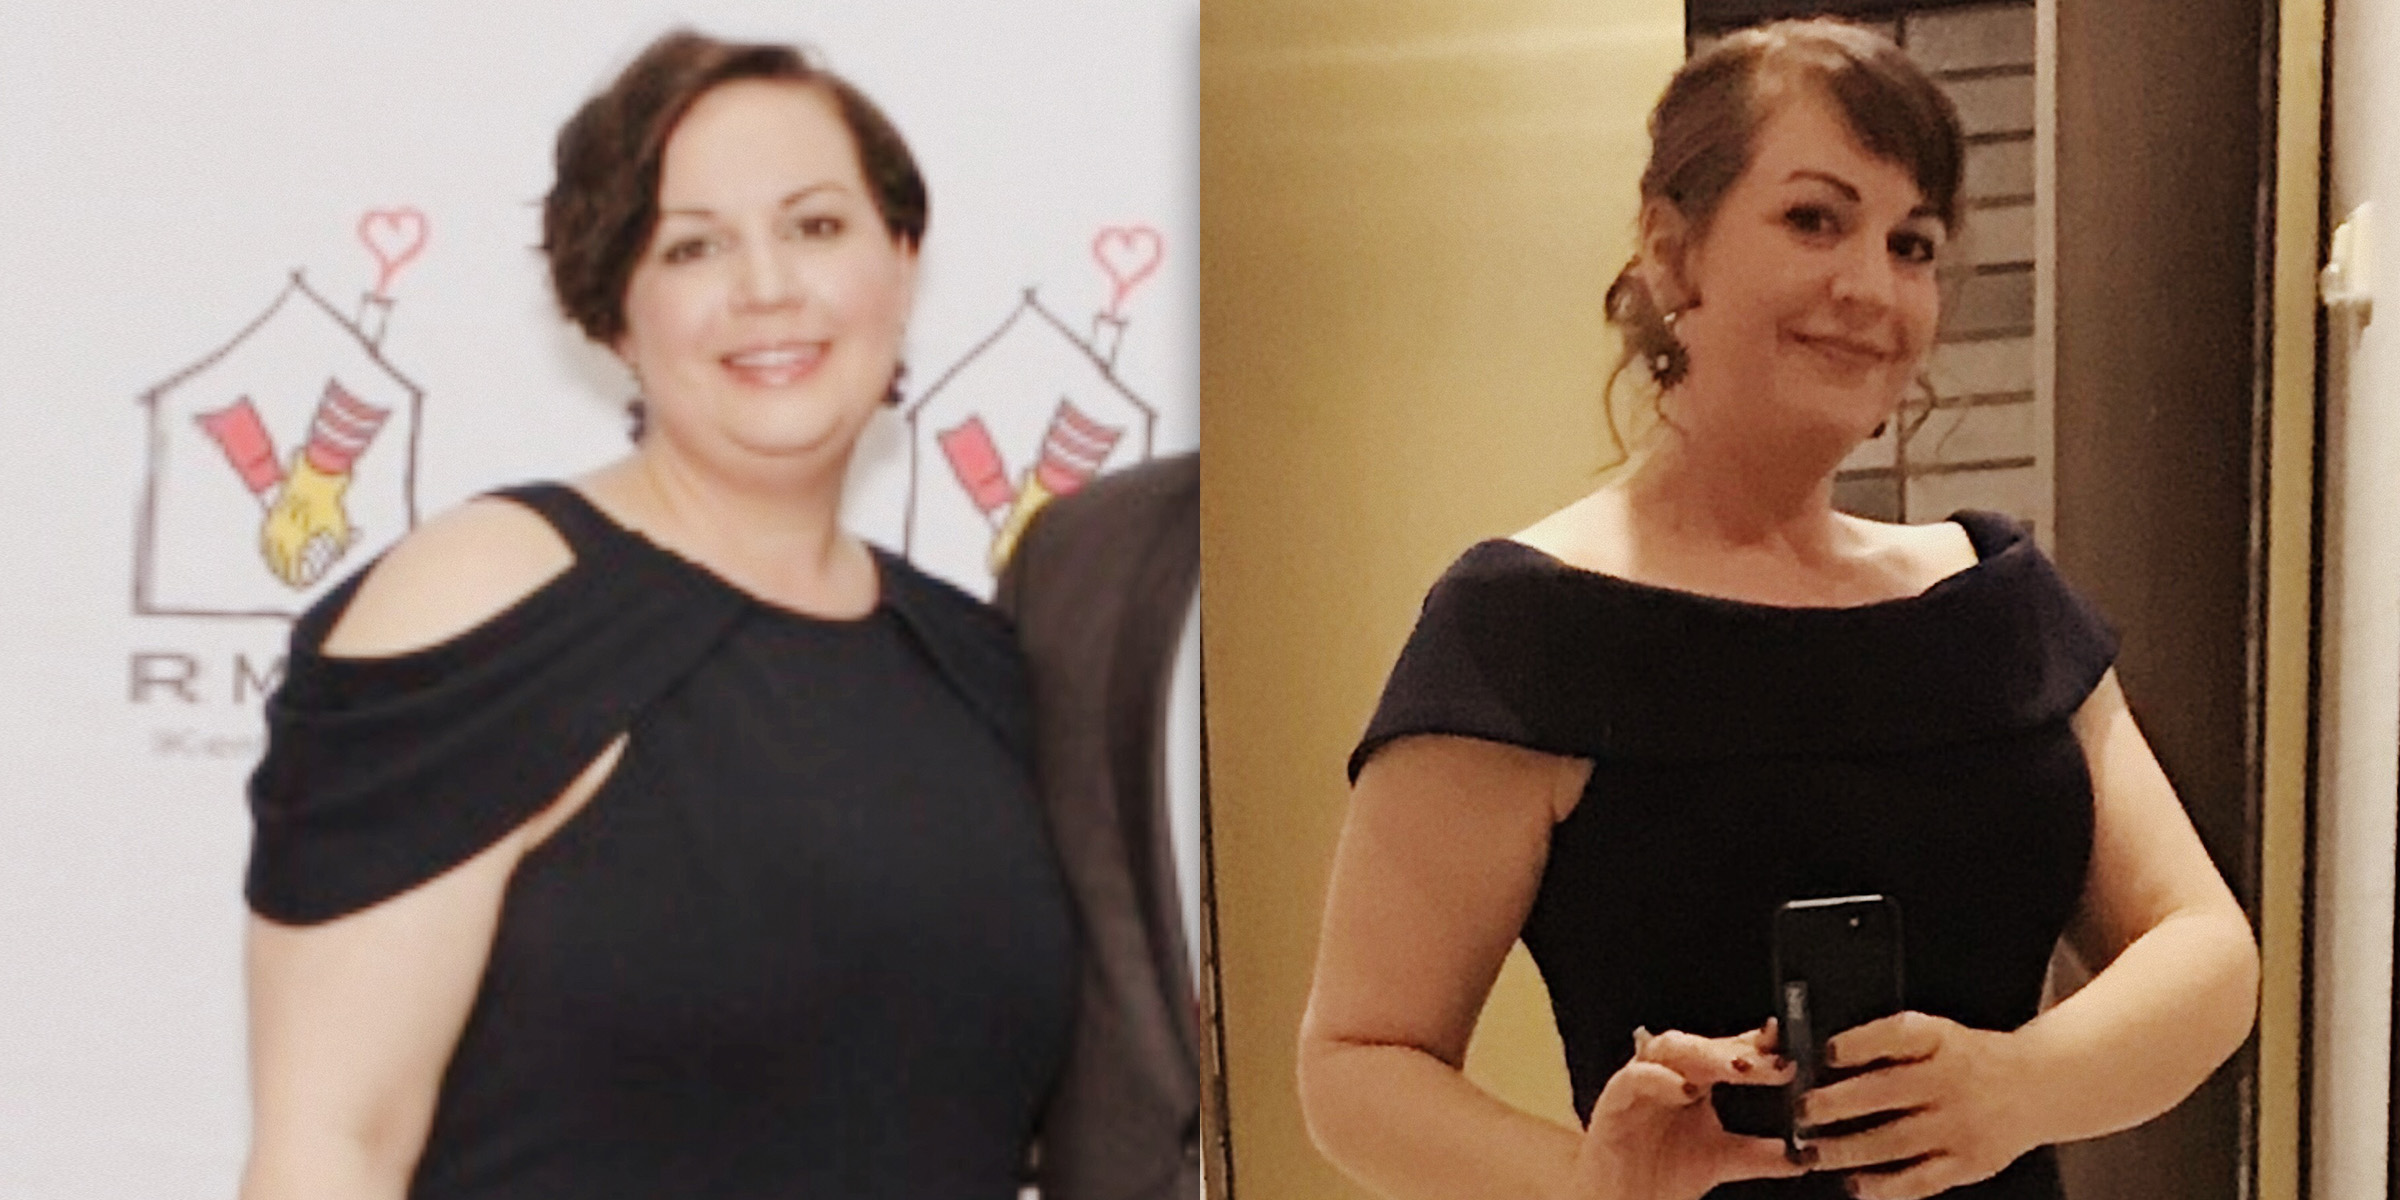 How to lose 100 pounds: Mom changes habits after heart attack at 36